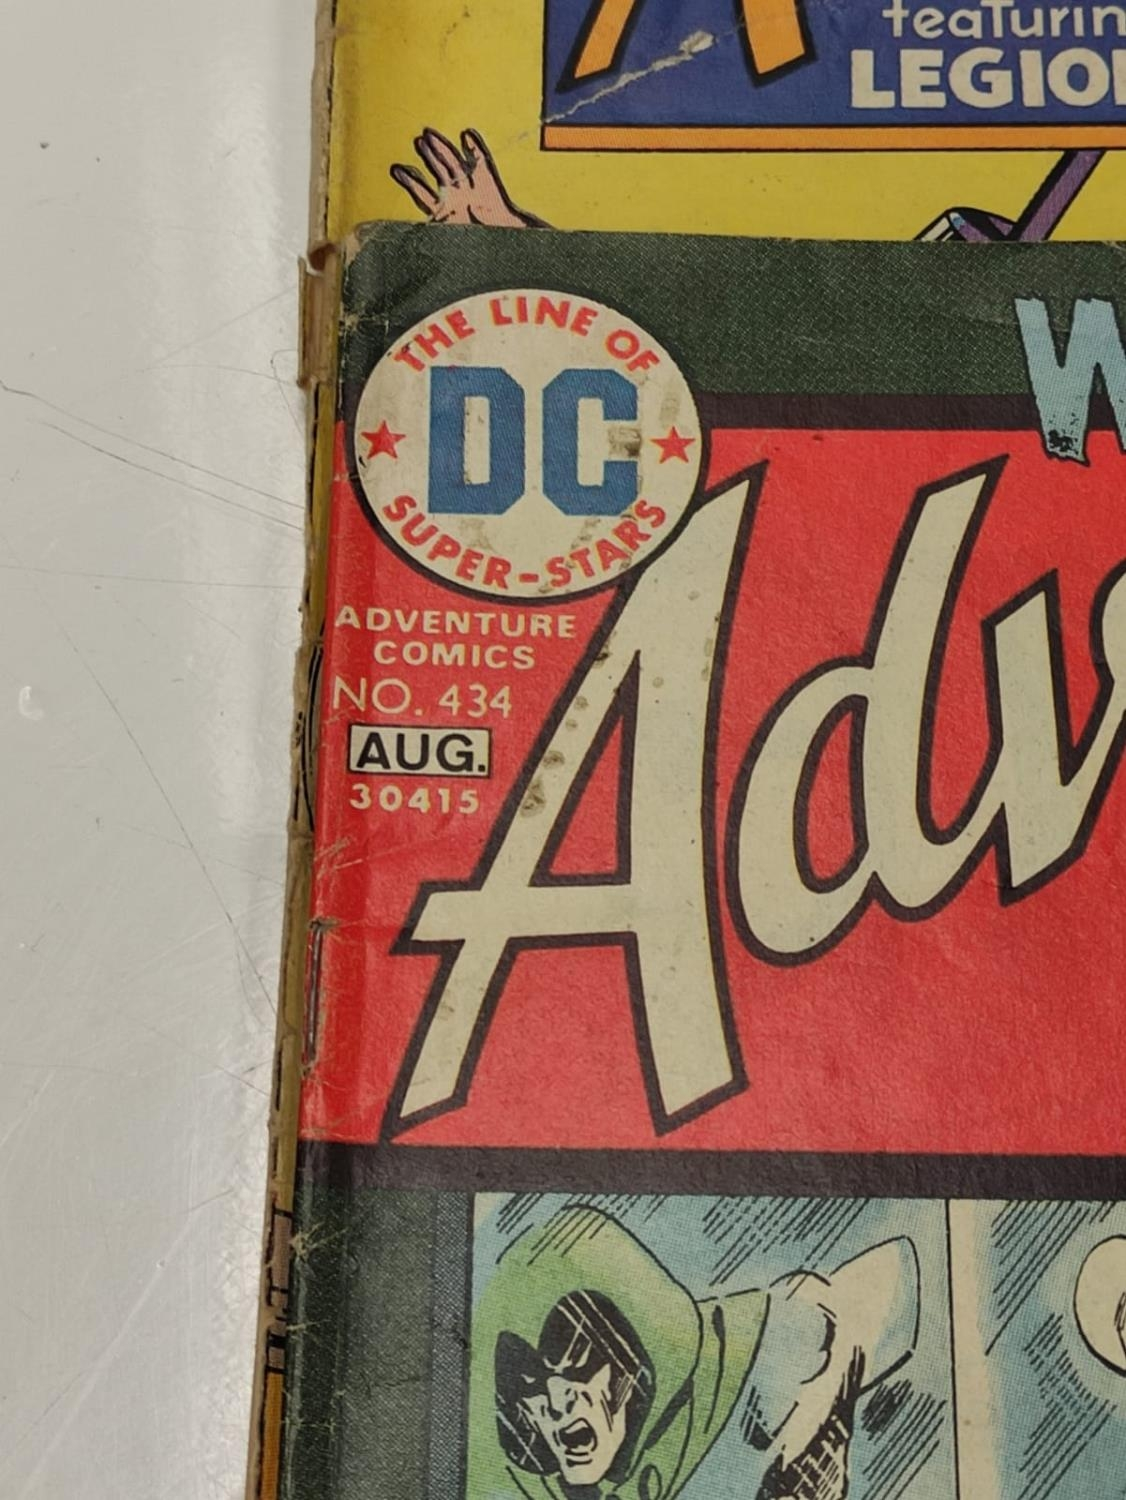 5 editions of DC Adventure Comics featuring Super-boy. - Image 13 of 19